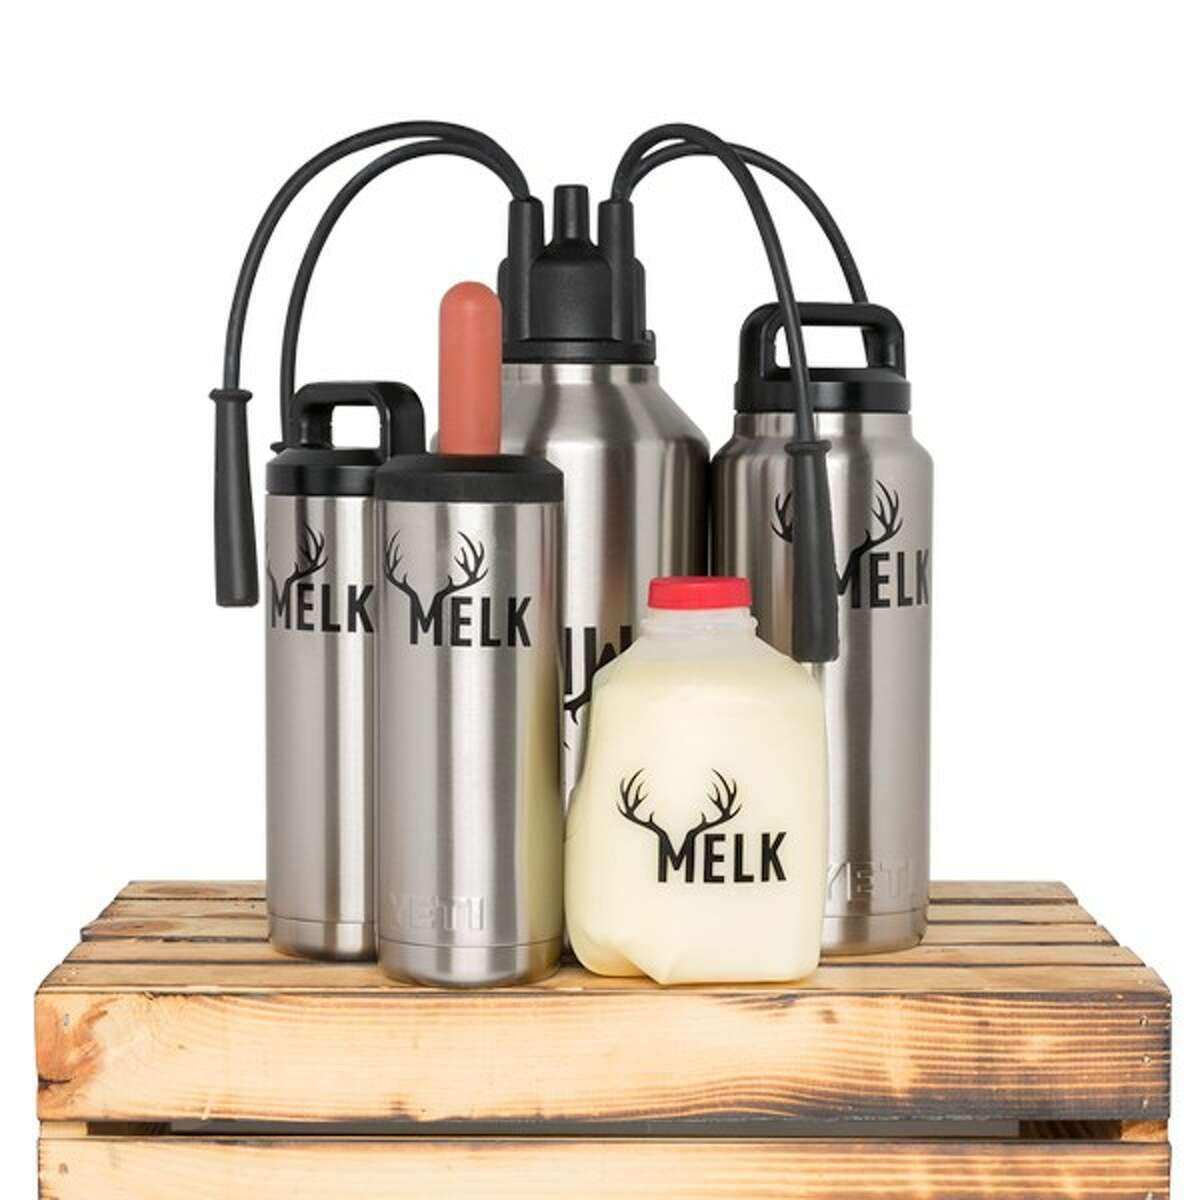 Yeti Coolers The cooling company partnered with retired NFL QB Jordan Shipley to share his love of milking elk (thus